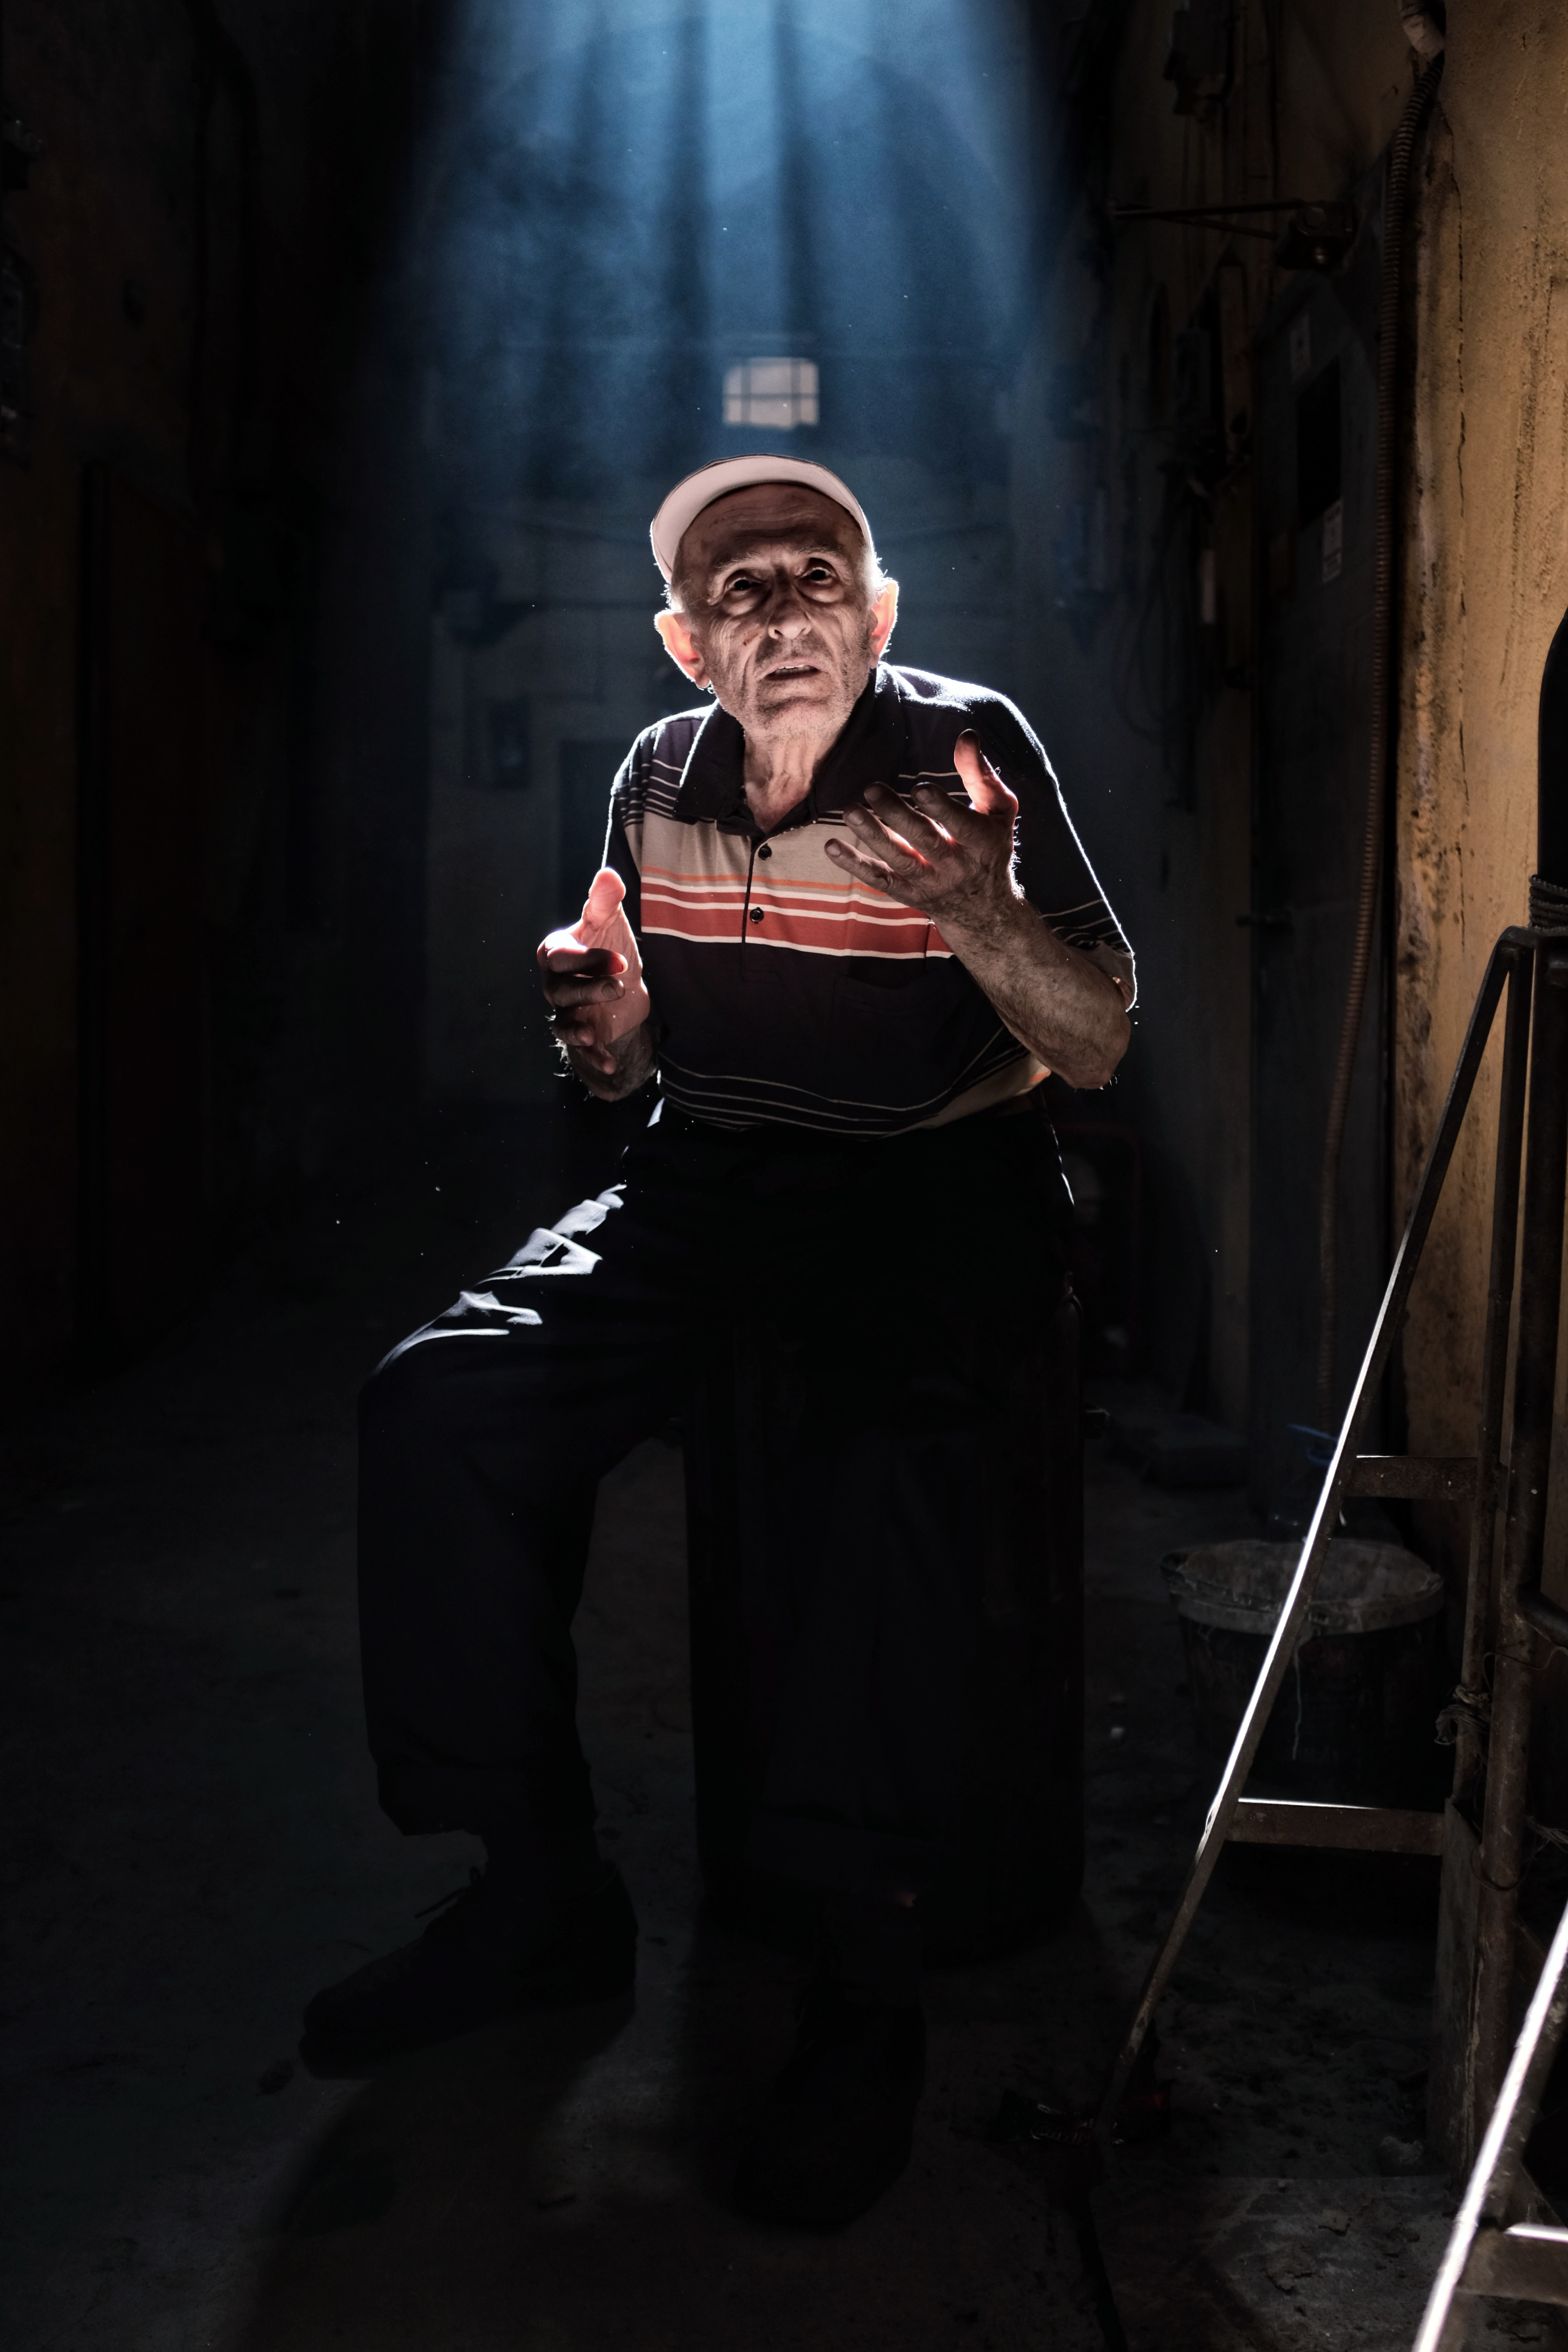 man wearing black and beige striped polo shirt and black pants sitting on stool with lights